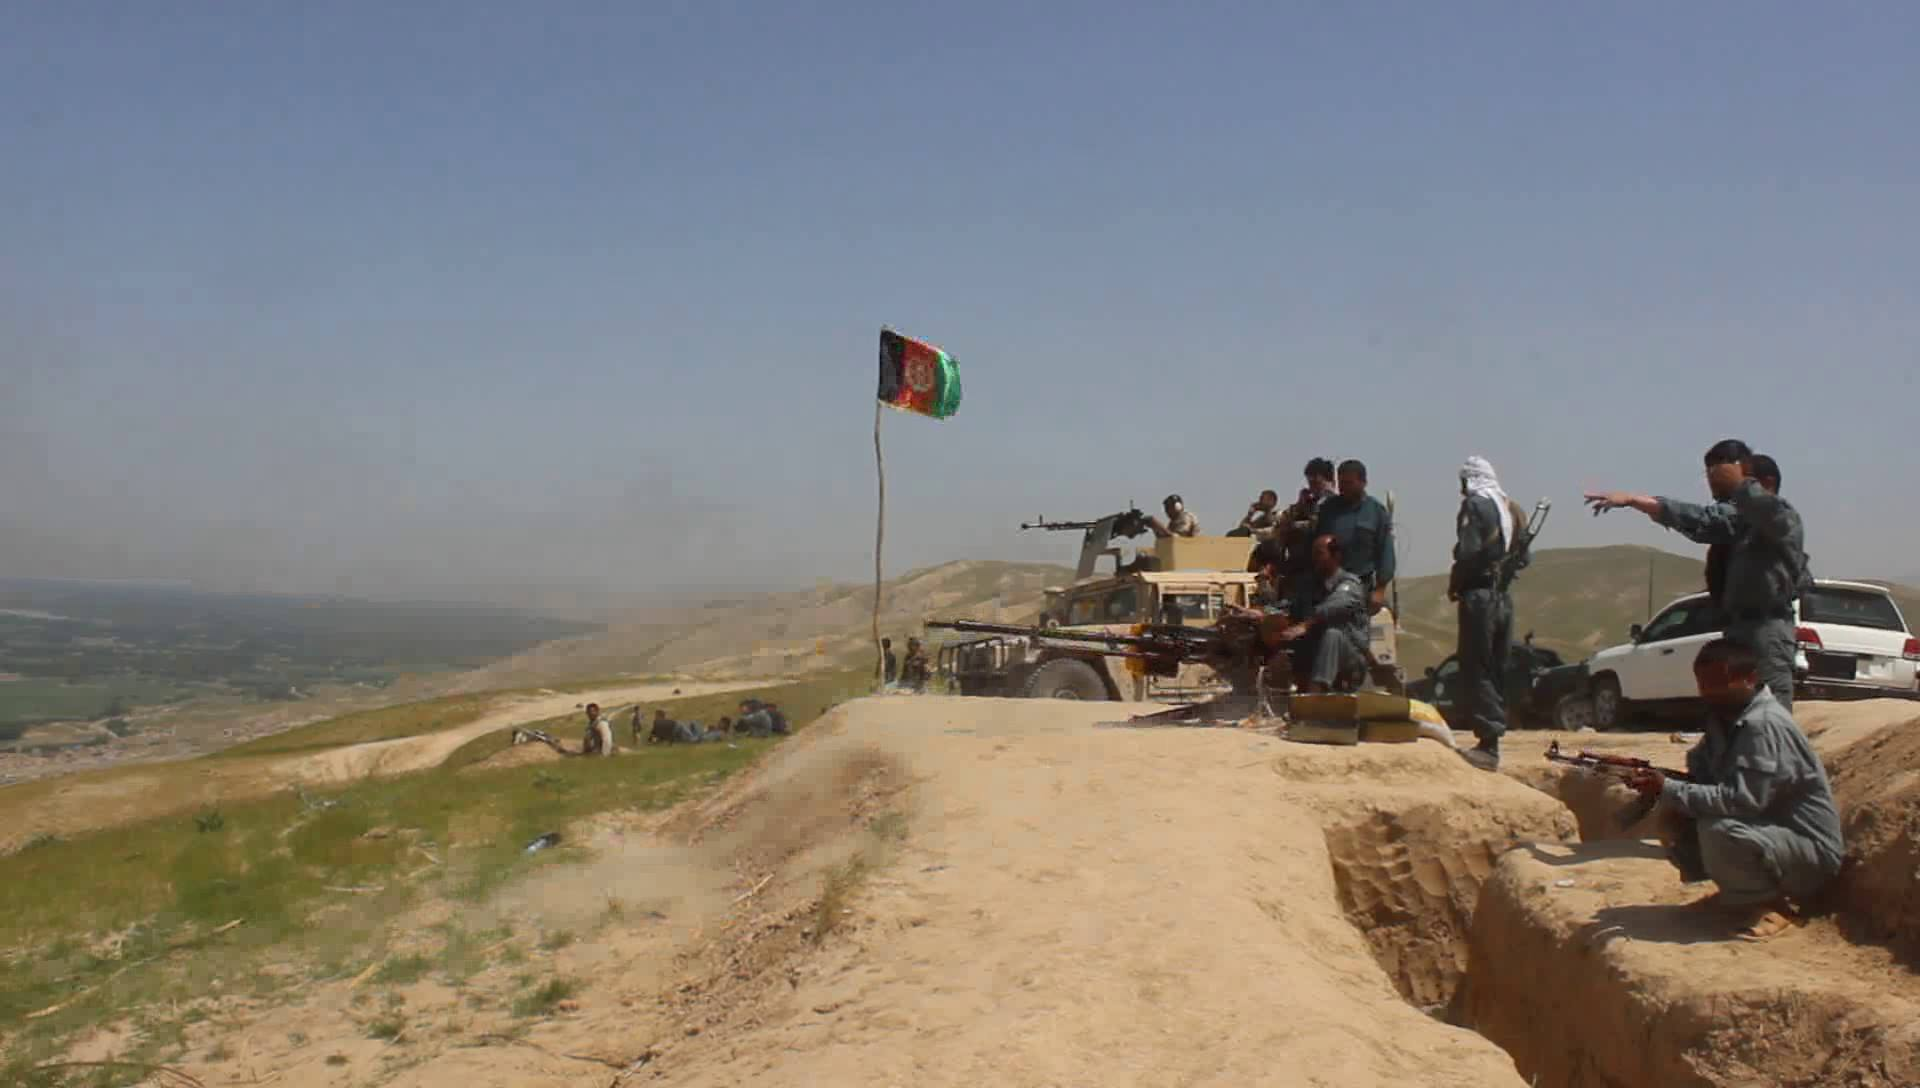 Taliban took control of the main security checkpoint in Dande Ghori in Pol-e-Khumri, the provincial capital of Baghlan